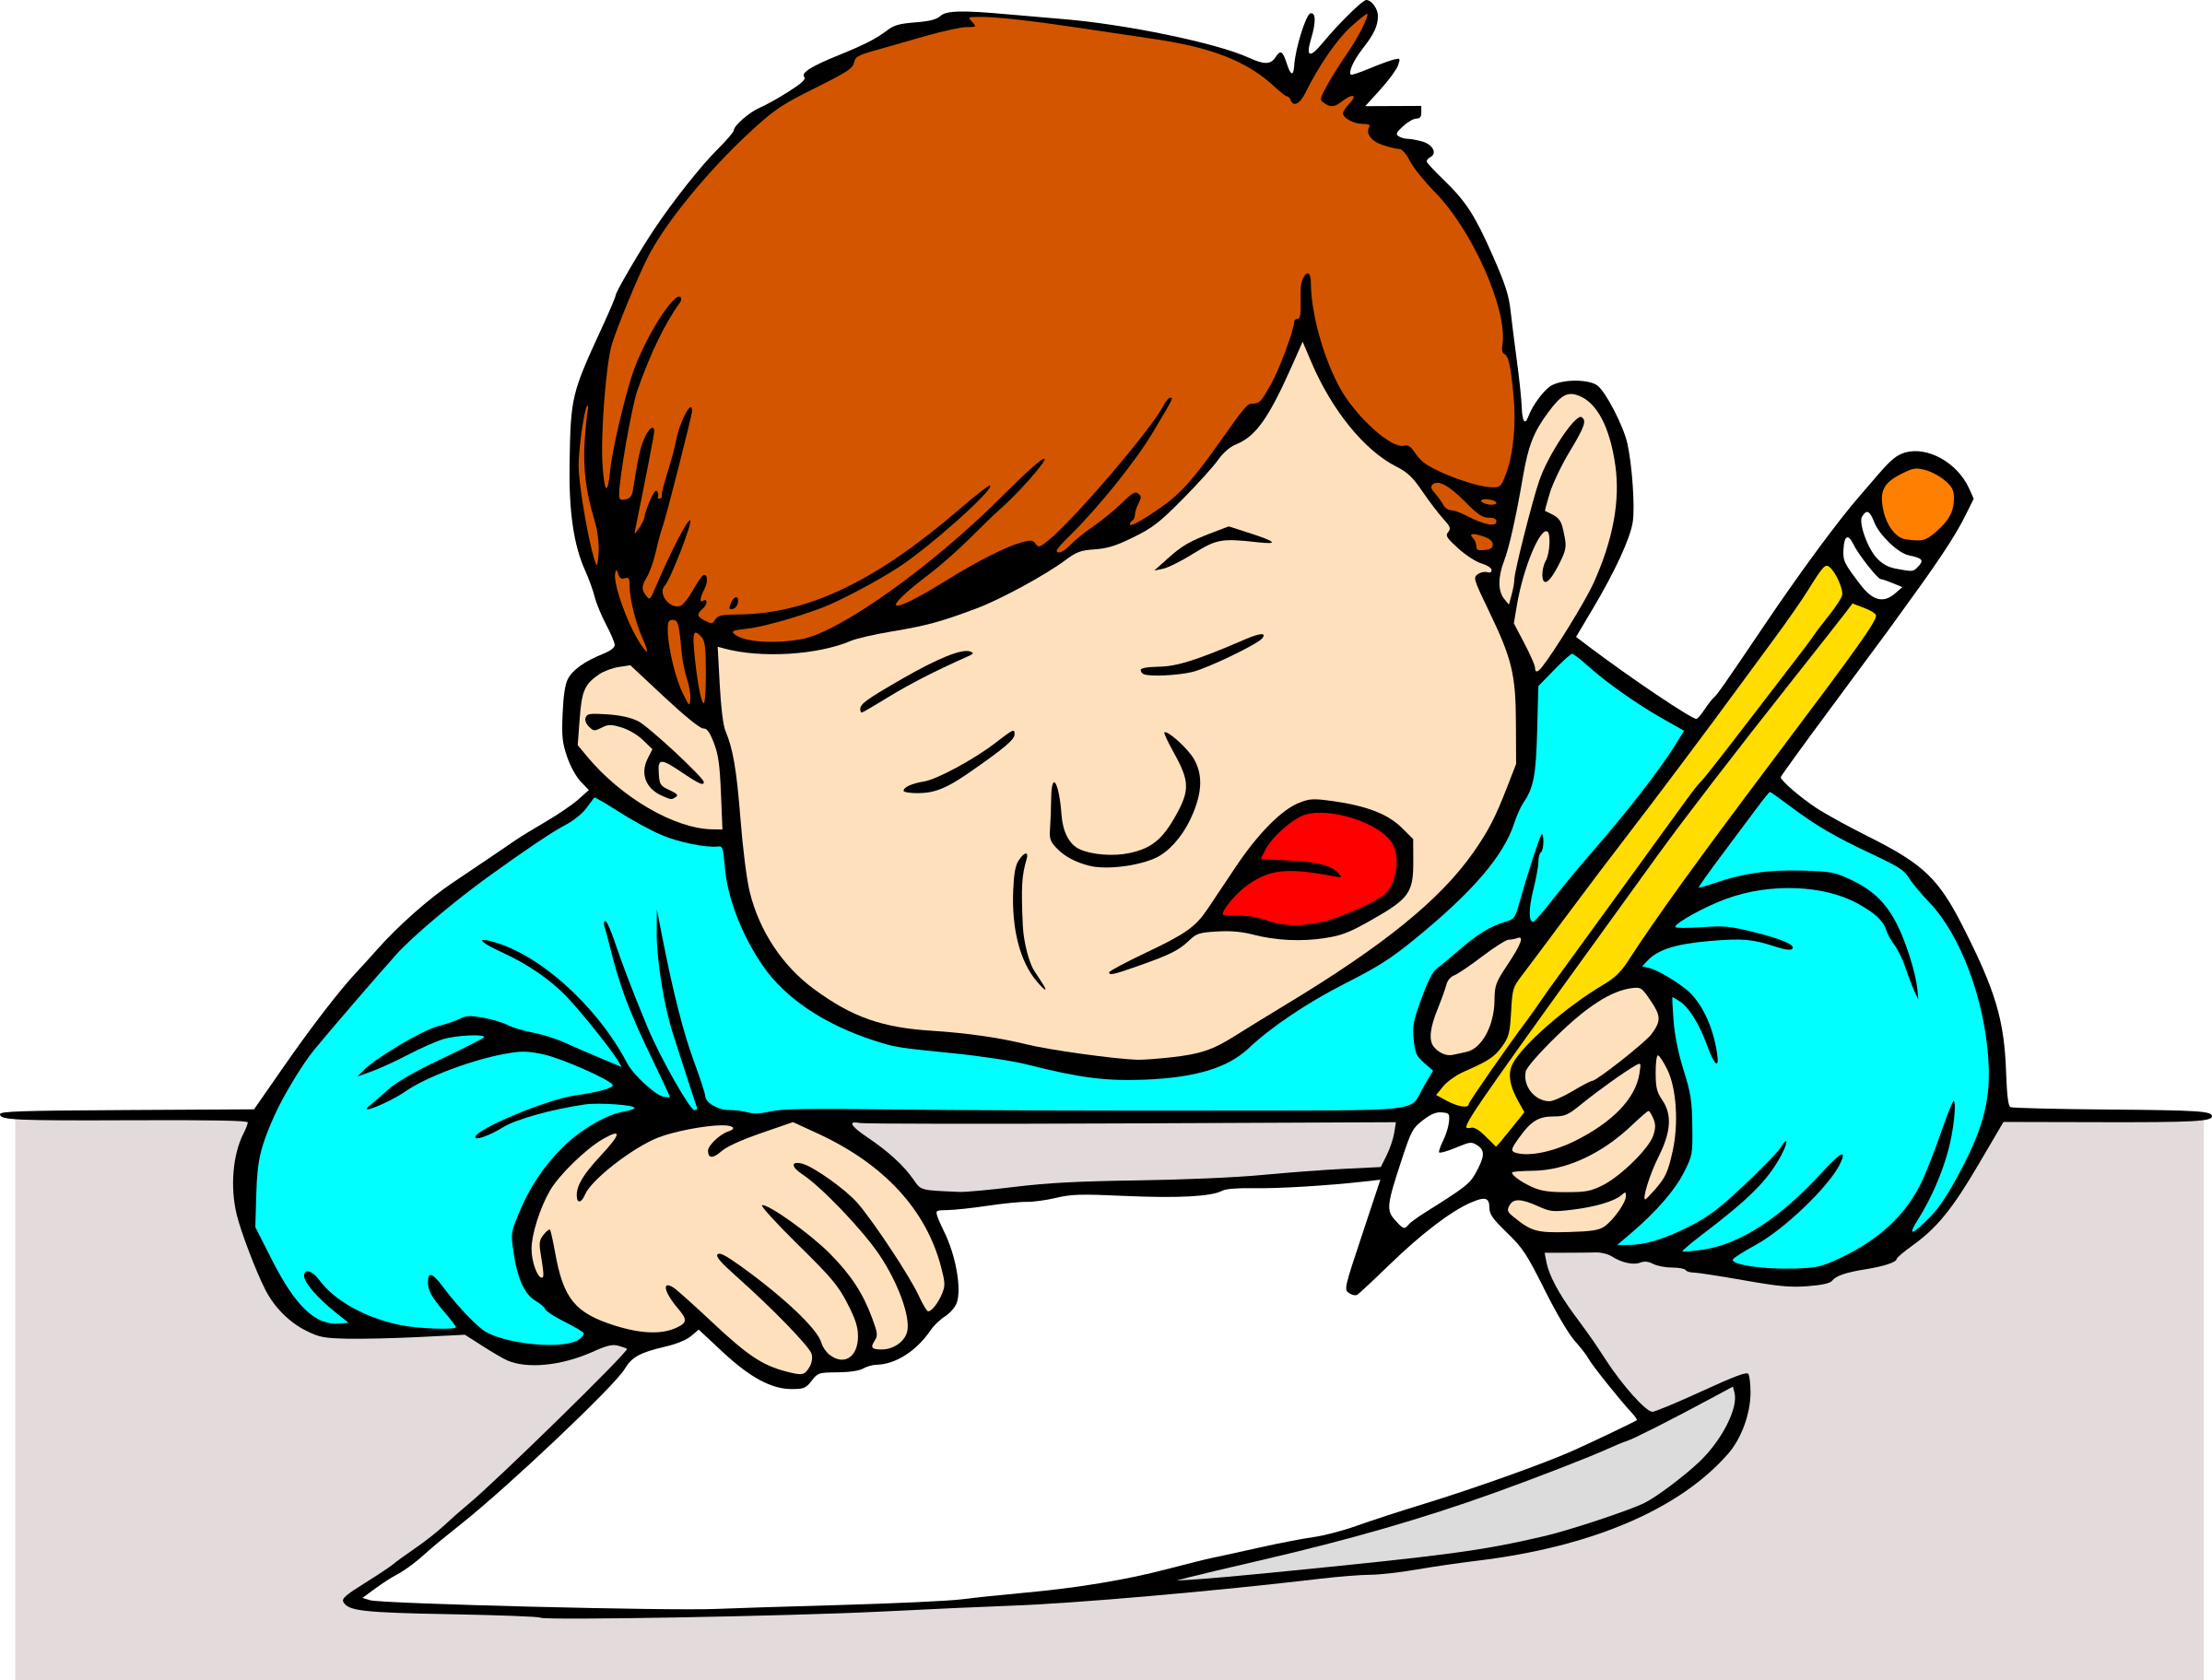 clipart student writing rh openclipart org student writing clipart black and white student writing clipart black and white